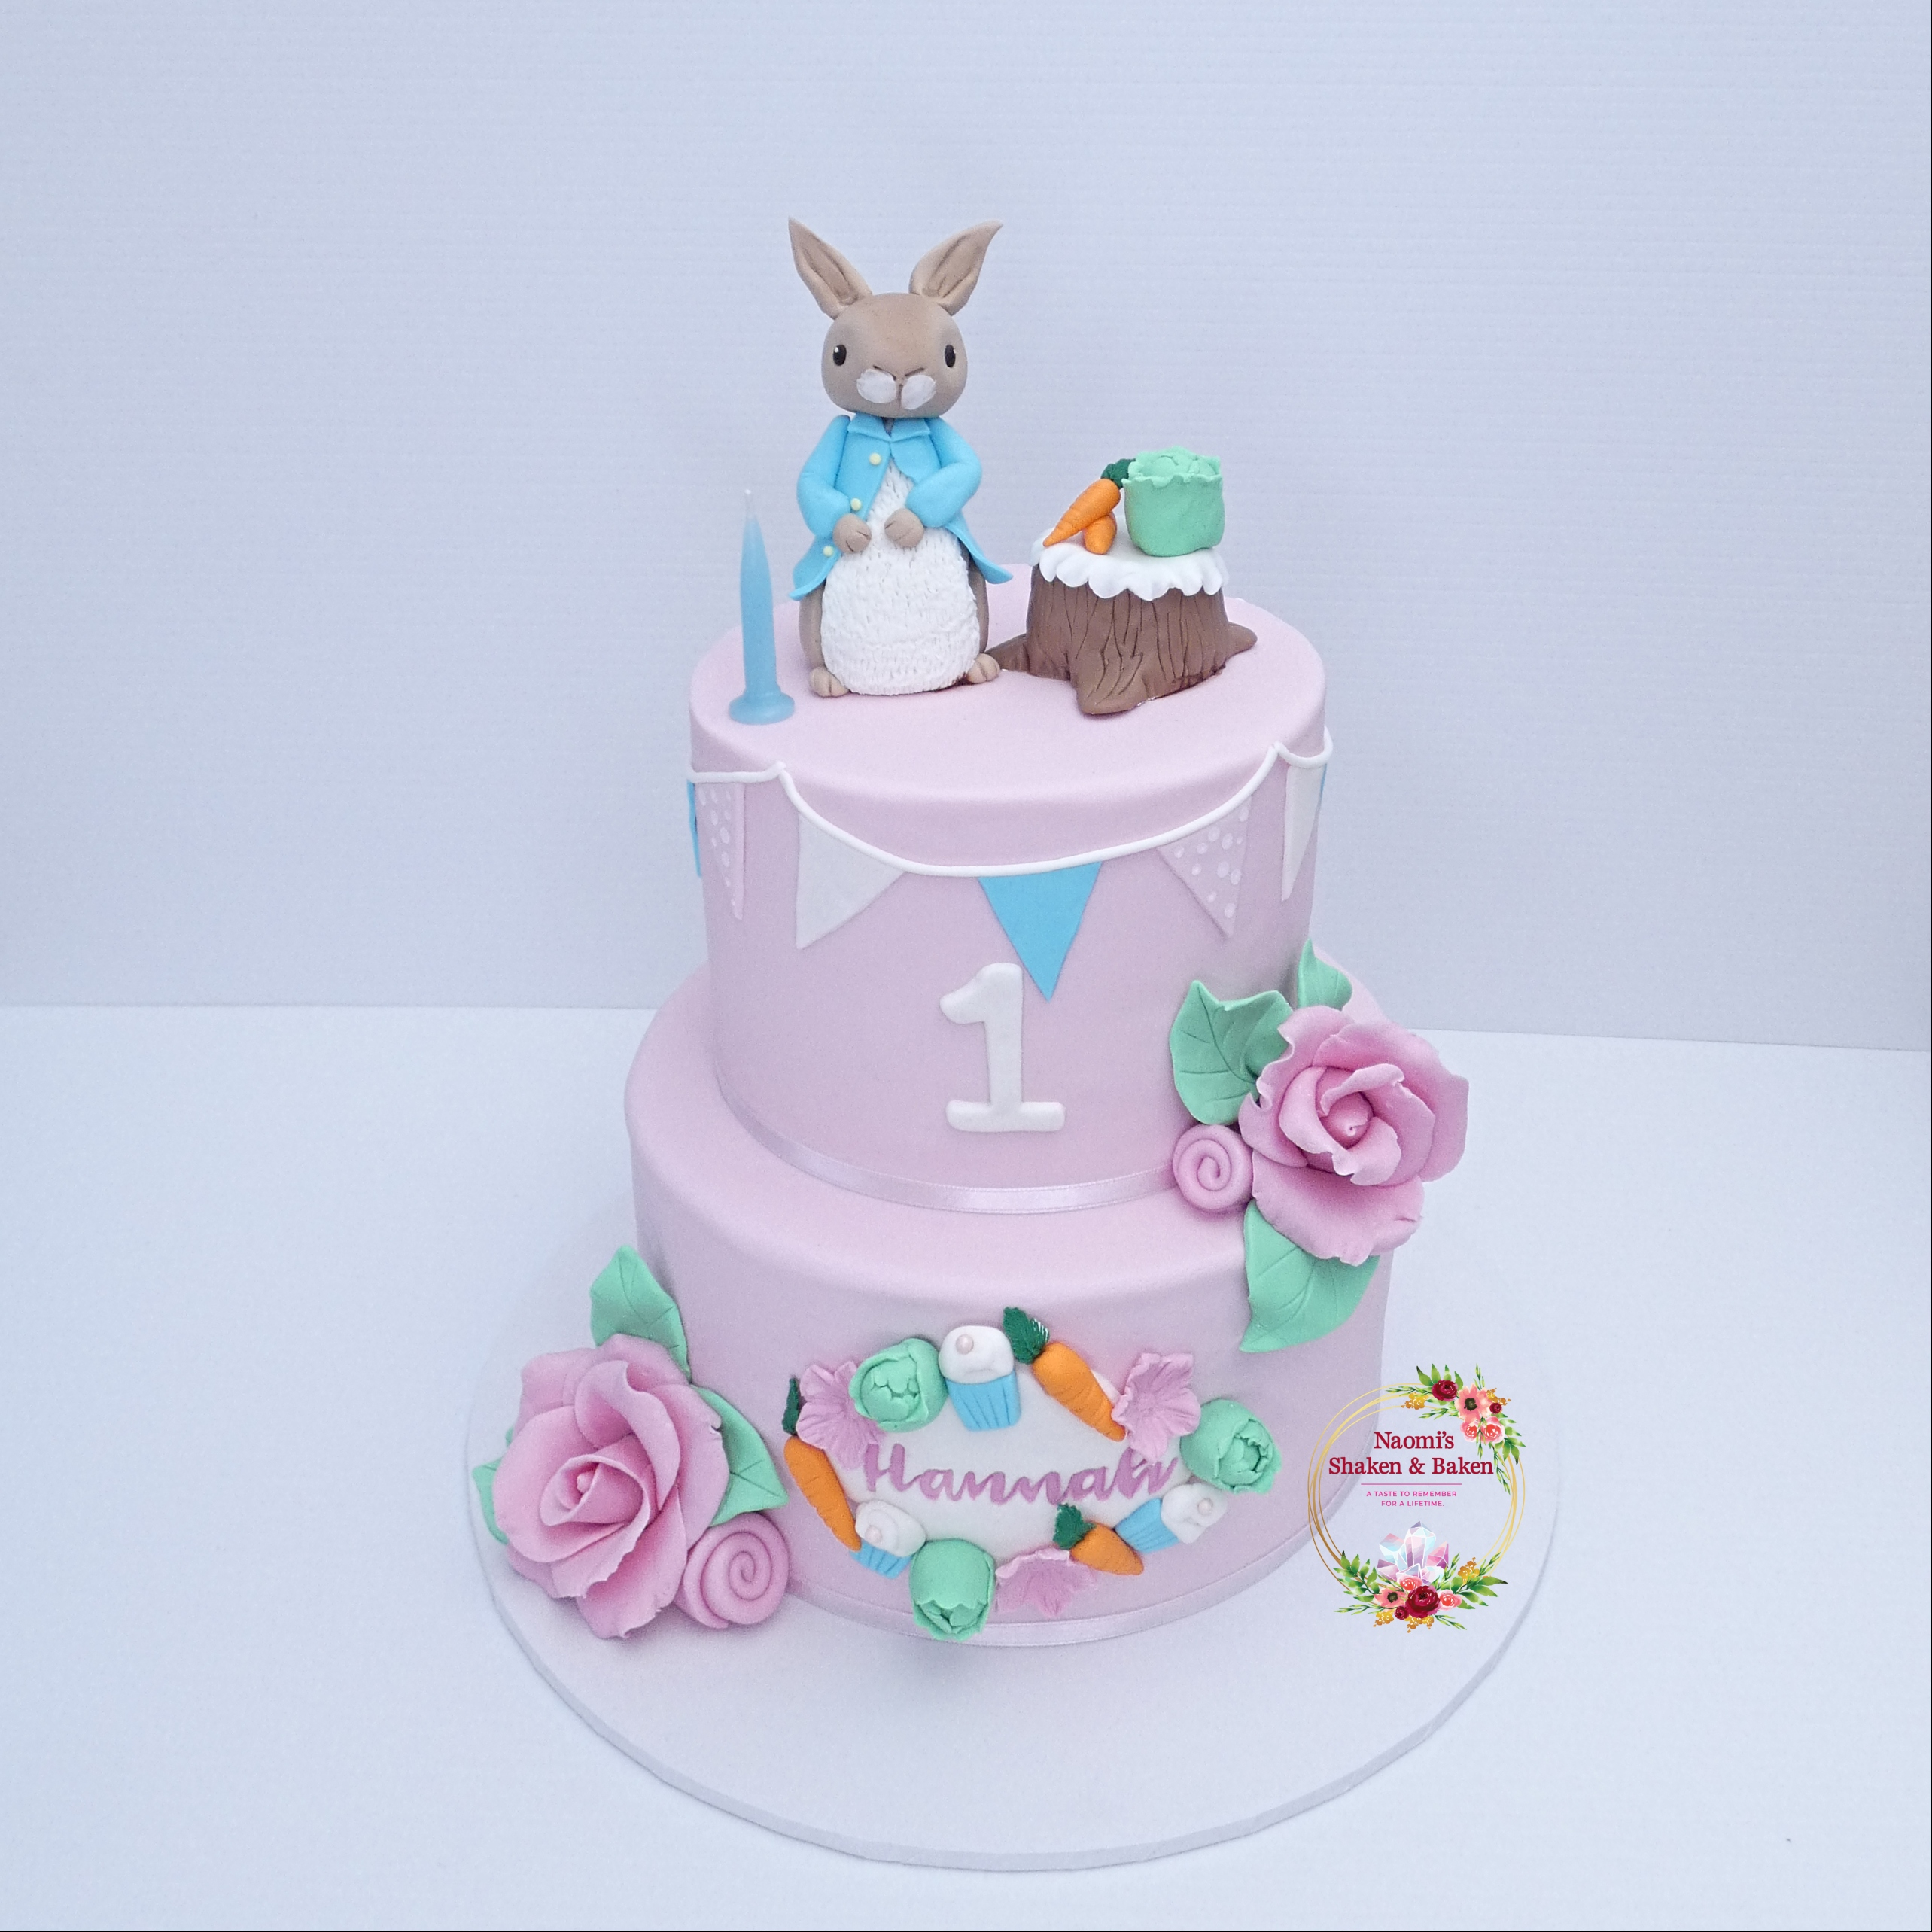 Peter Rabbit Themed Birthday Cake NorthLakes Caboolture